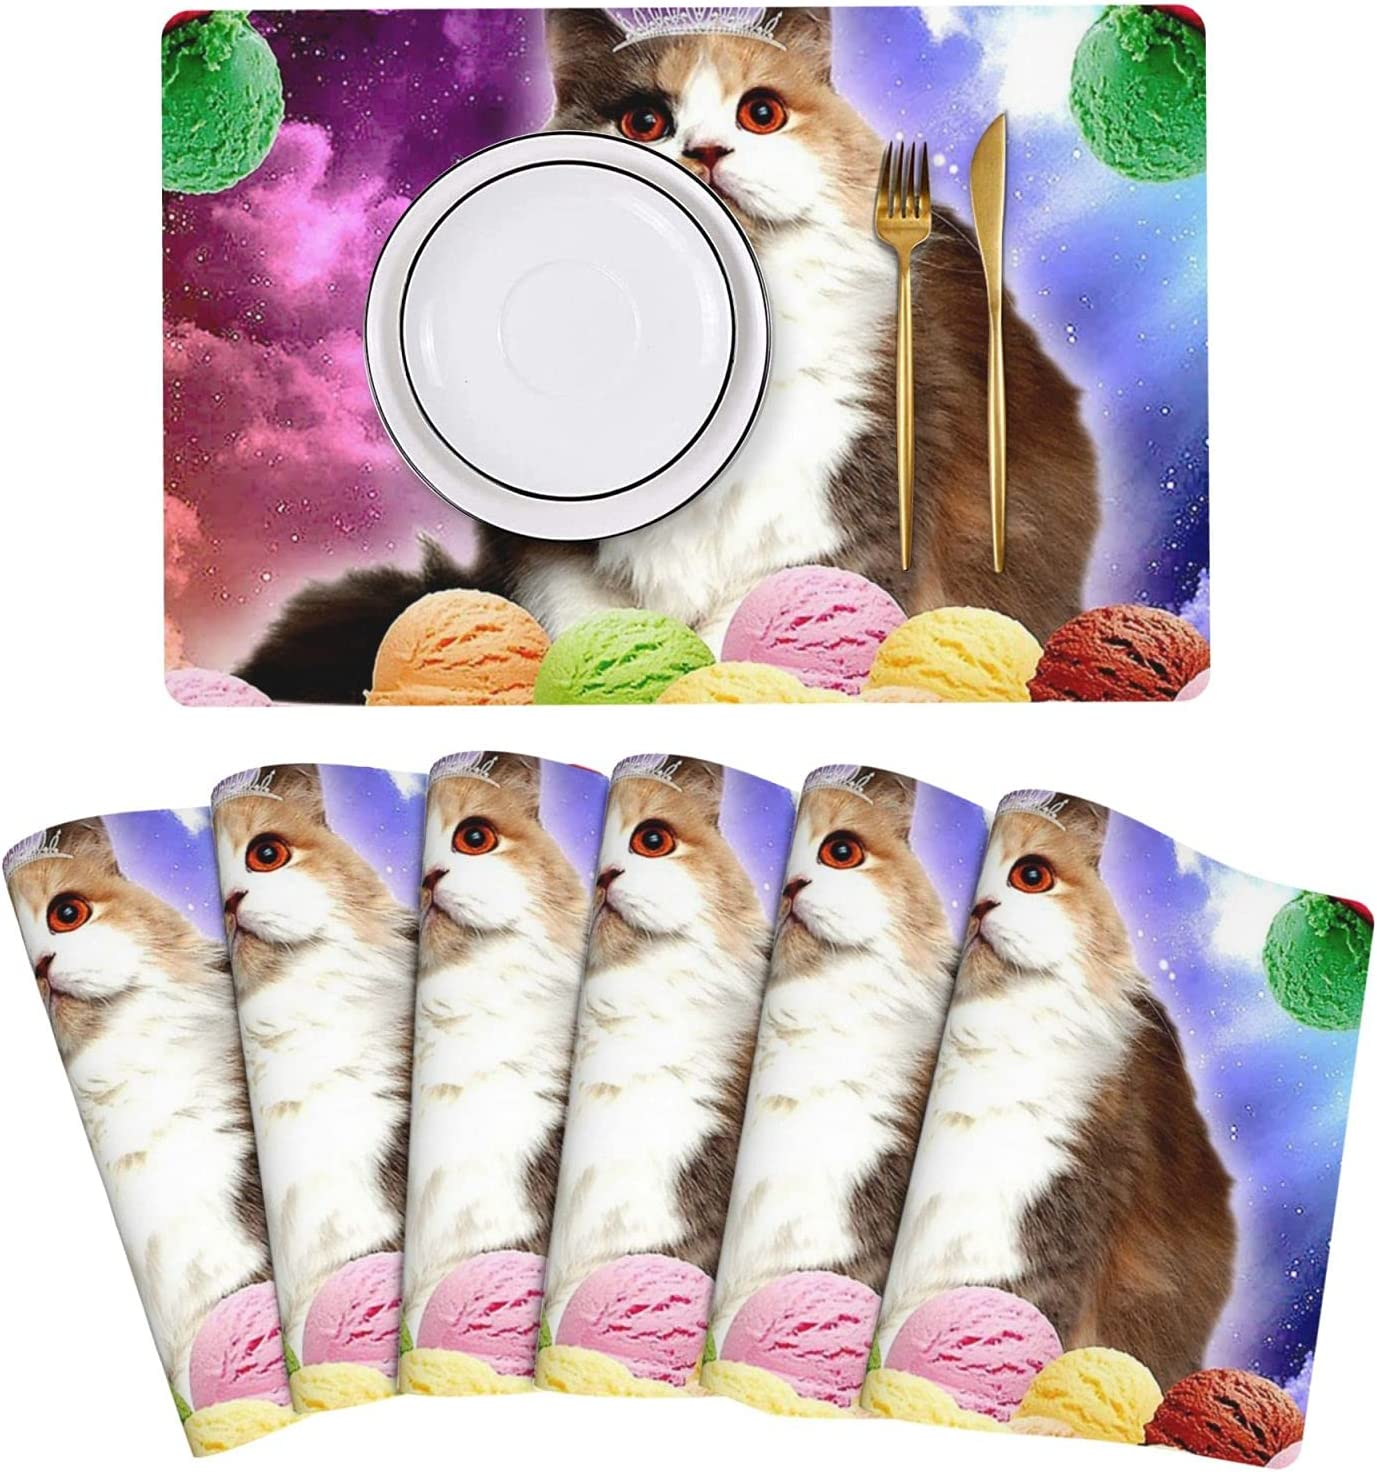 Ice Cream Cat Princess Kitty Placemat Table Mats Inventory Direct sale of manufacturer cleanup selling sale Set Leather of